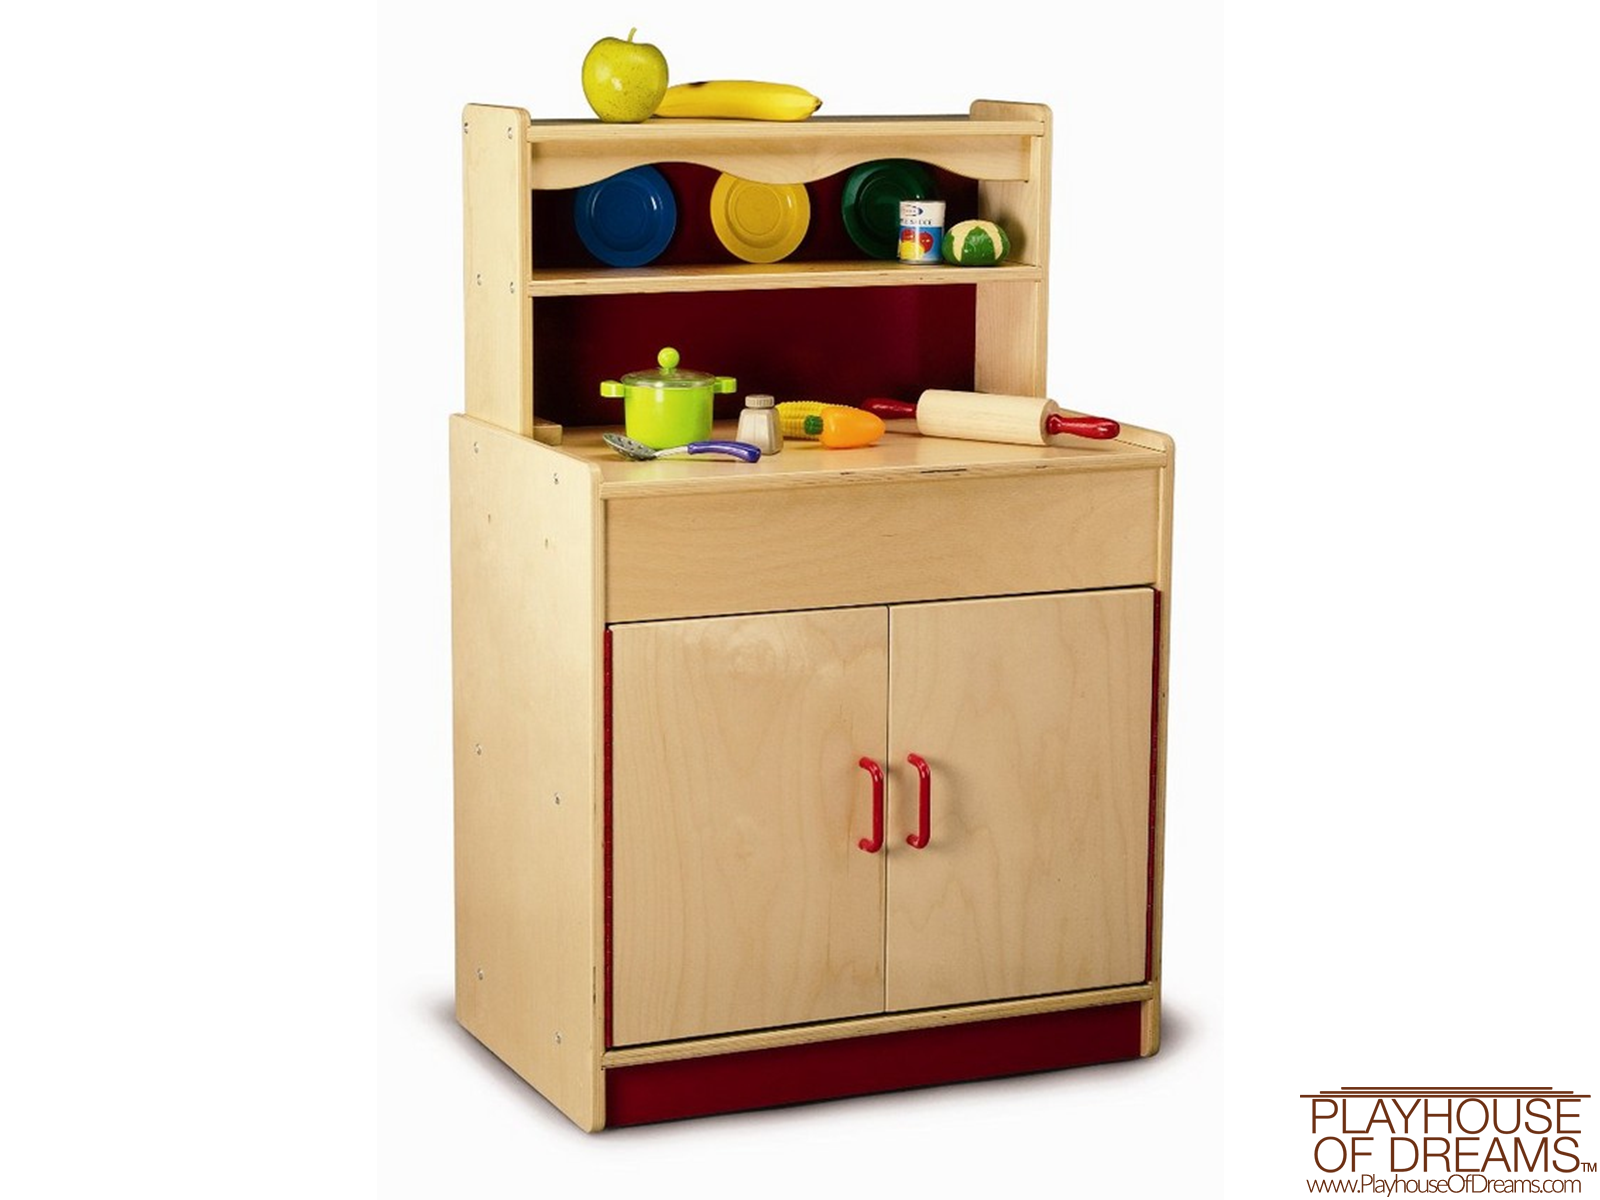 Preschool Hutch Cabinet - Playhouse of Dreams  - 1